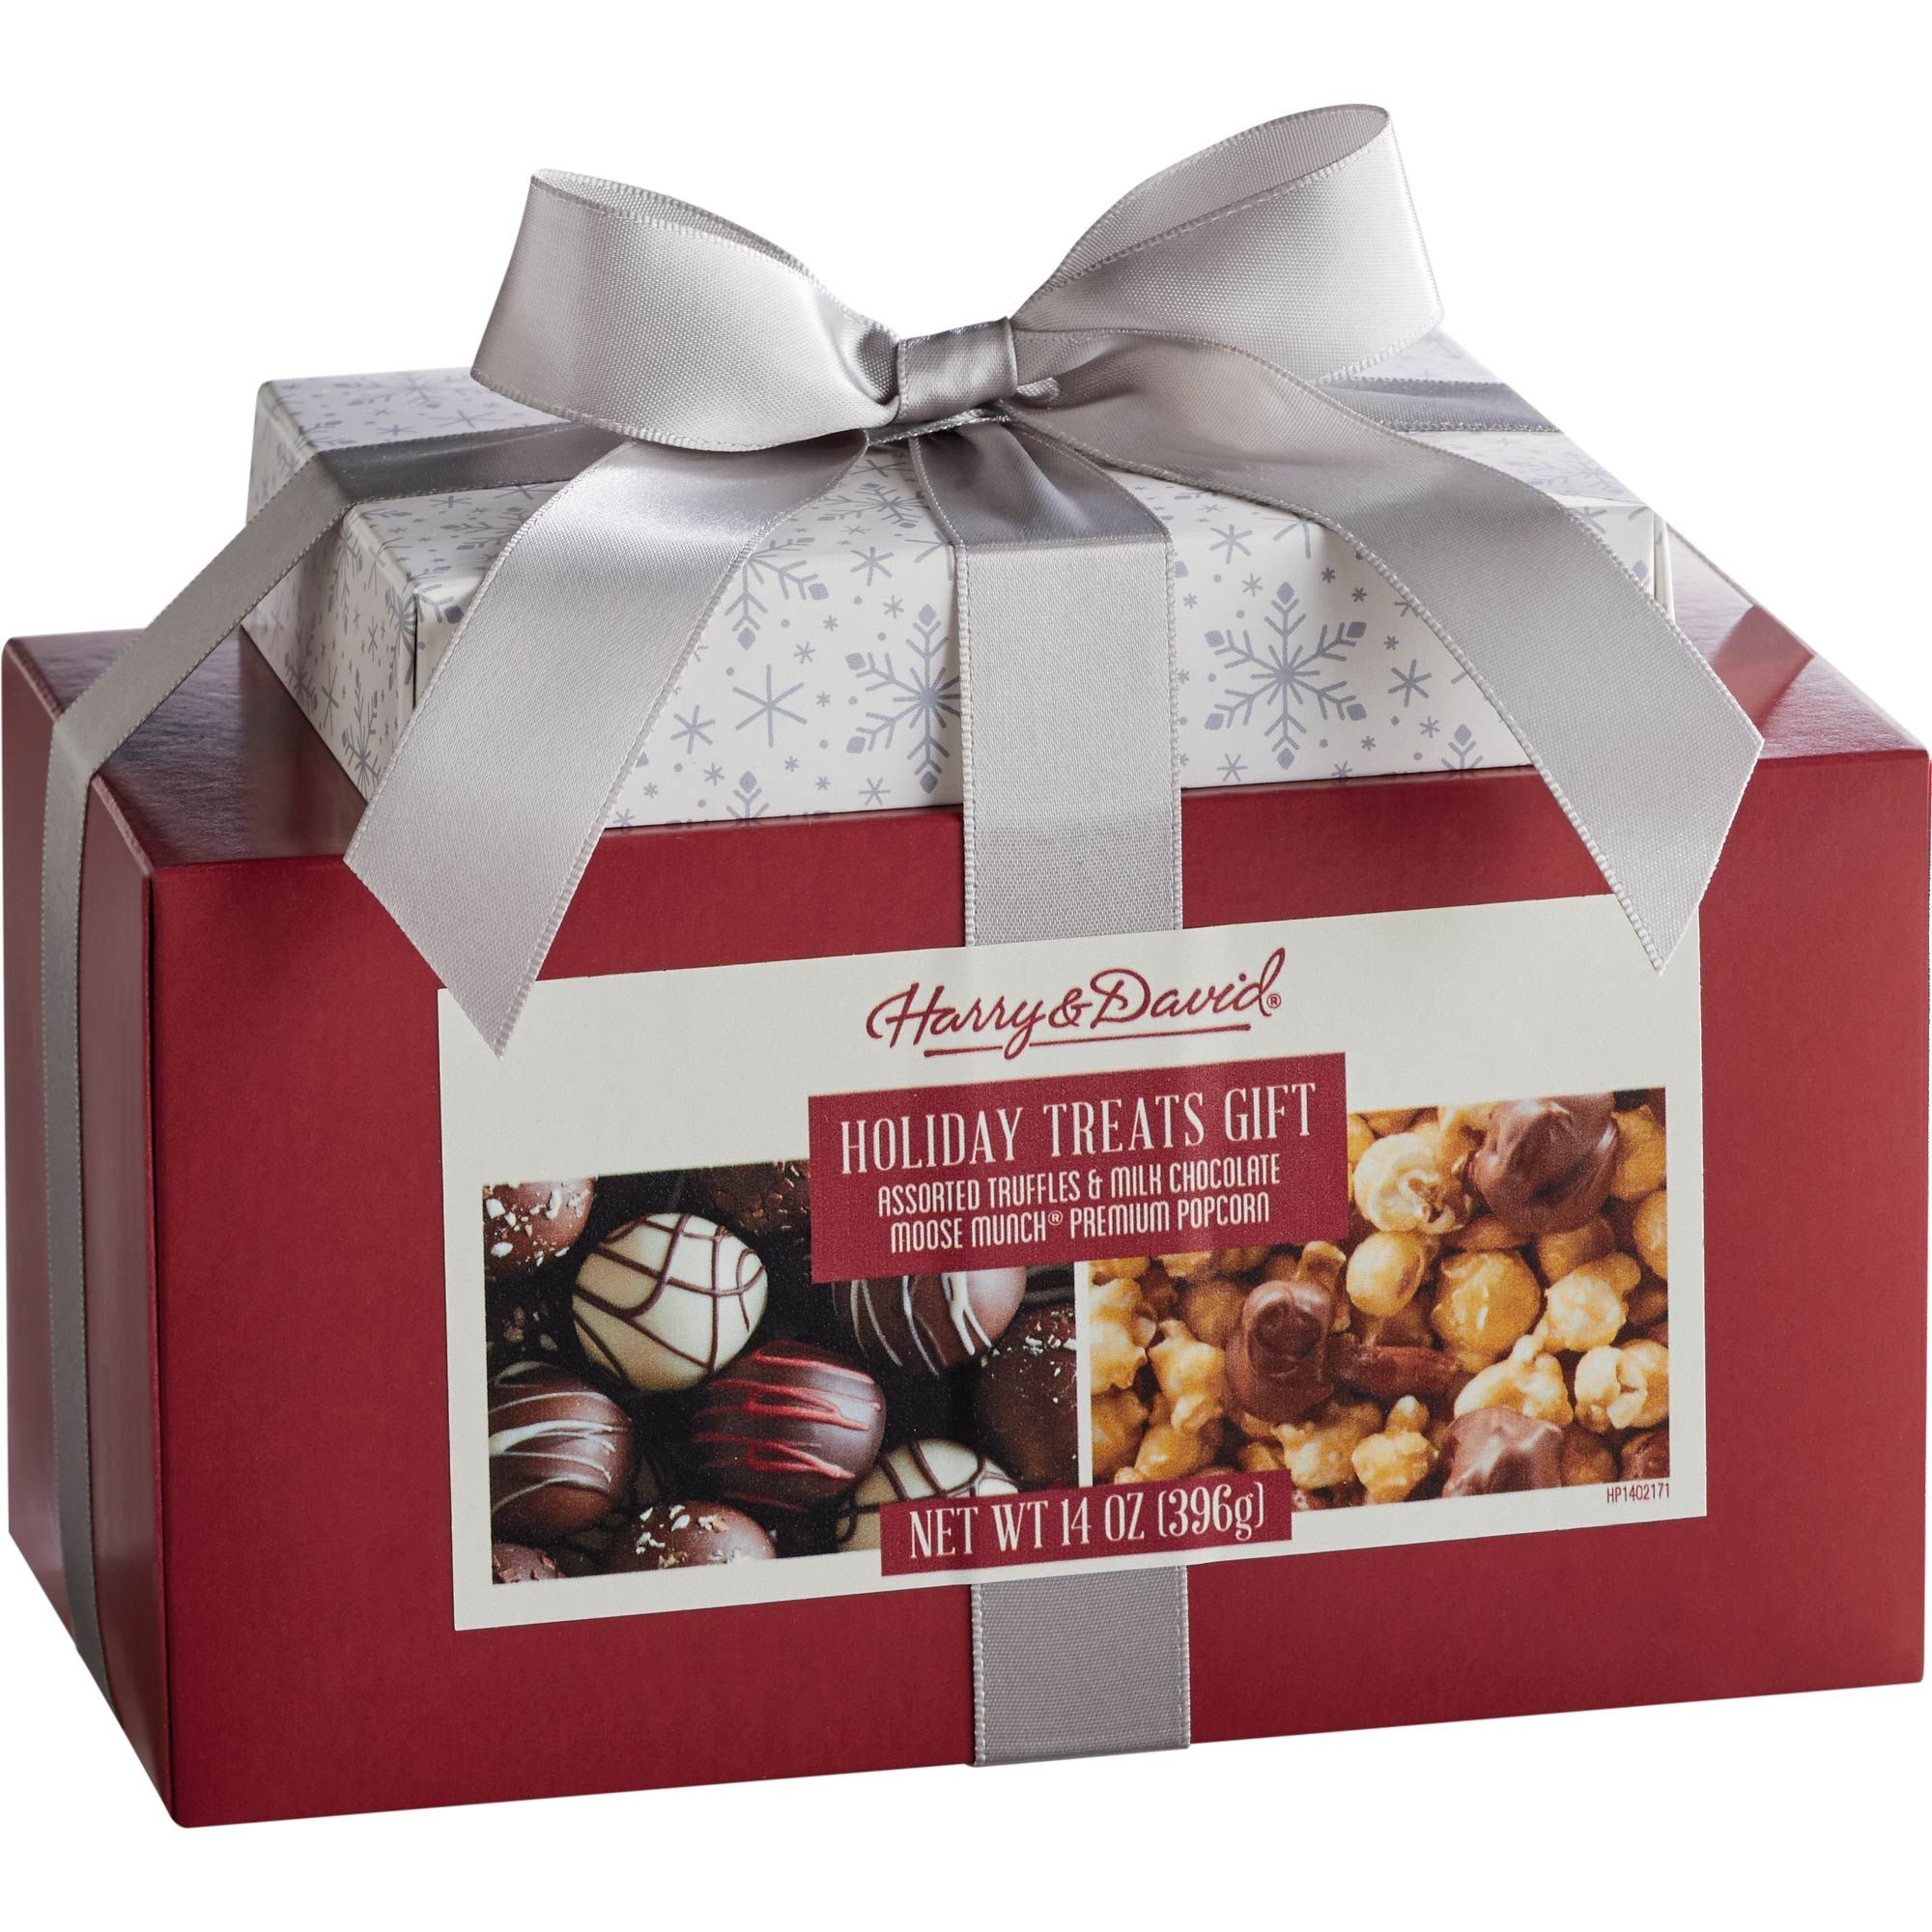 This Gift Set From Harry David Features A 4 Oz Box Of Assorted Truffles And A 10 Oz Box Of Their Milk Choc Holiday Treats Gifts Holiday Treats Gift Towers